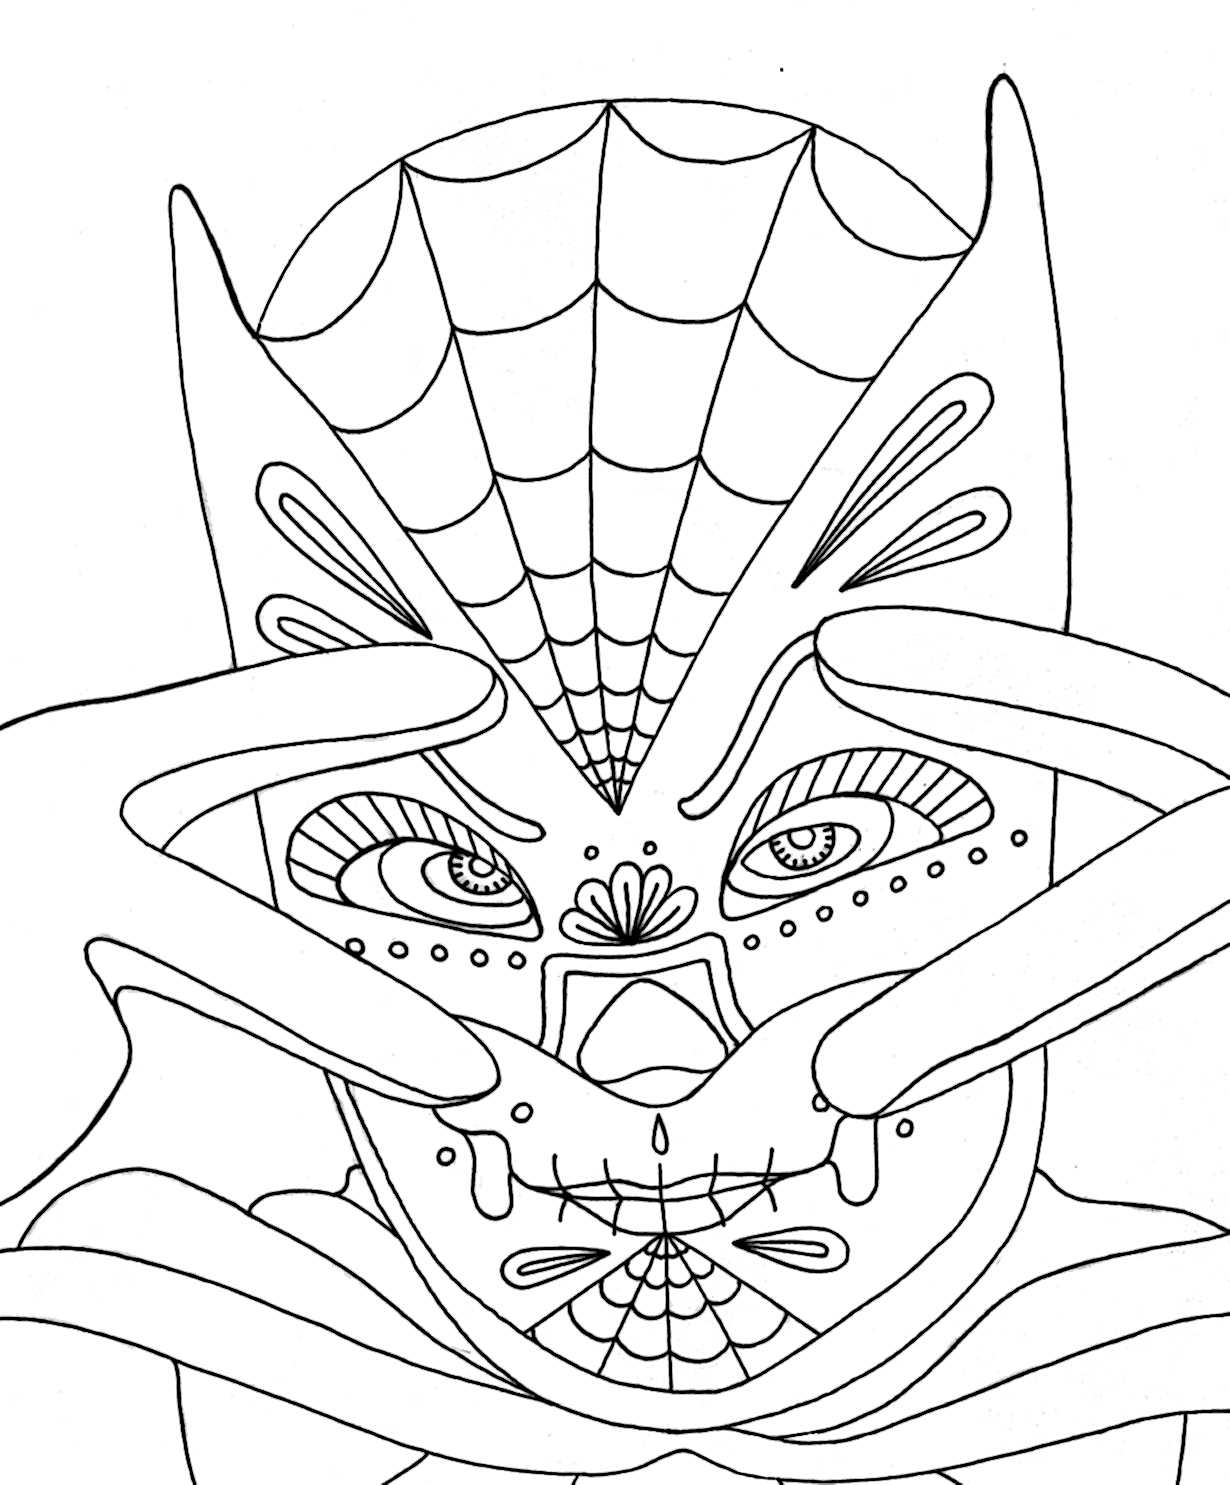 yucca flats nm wenchkins coloring pages dia de los adam west